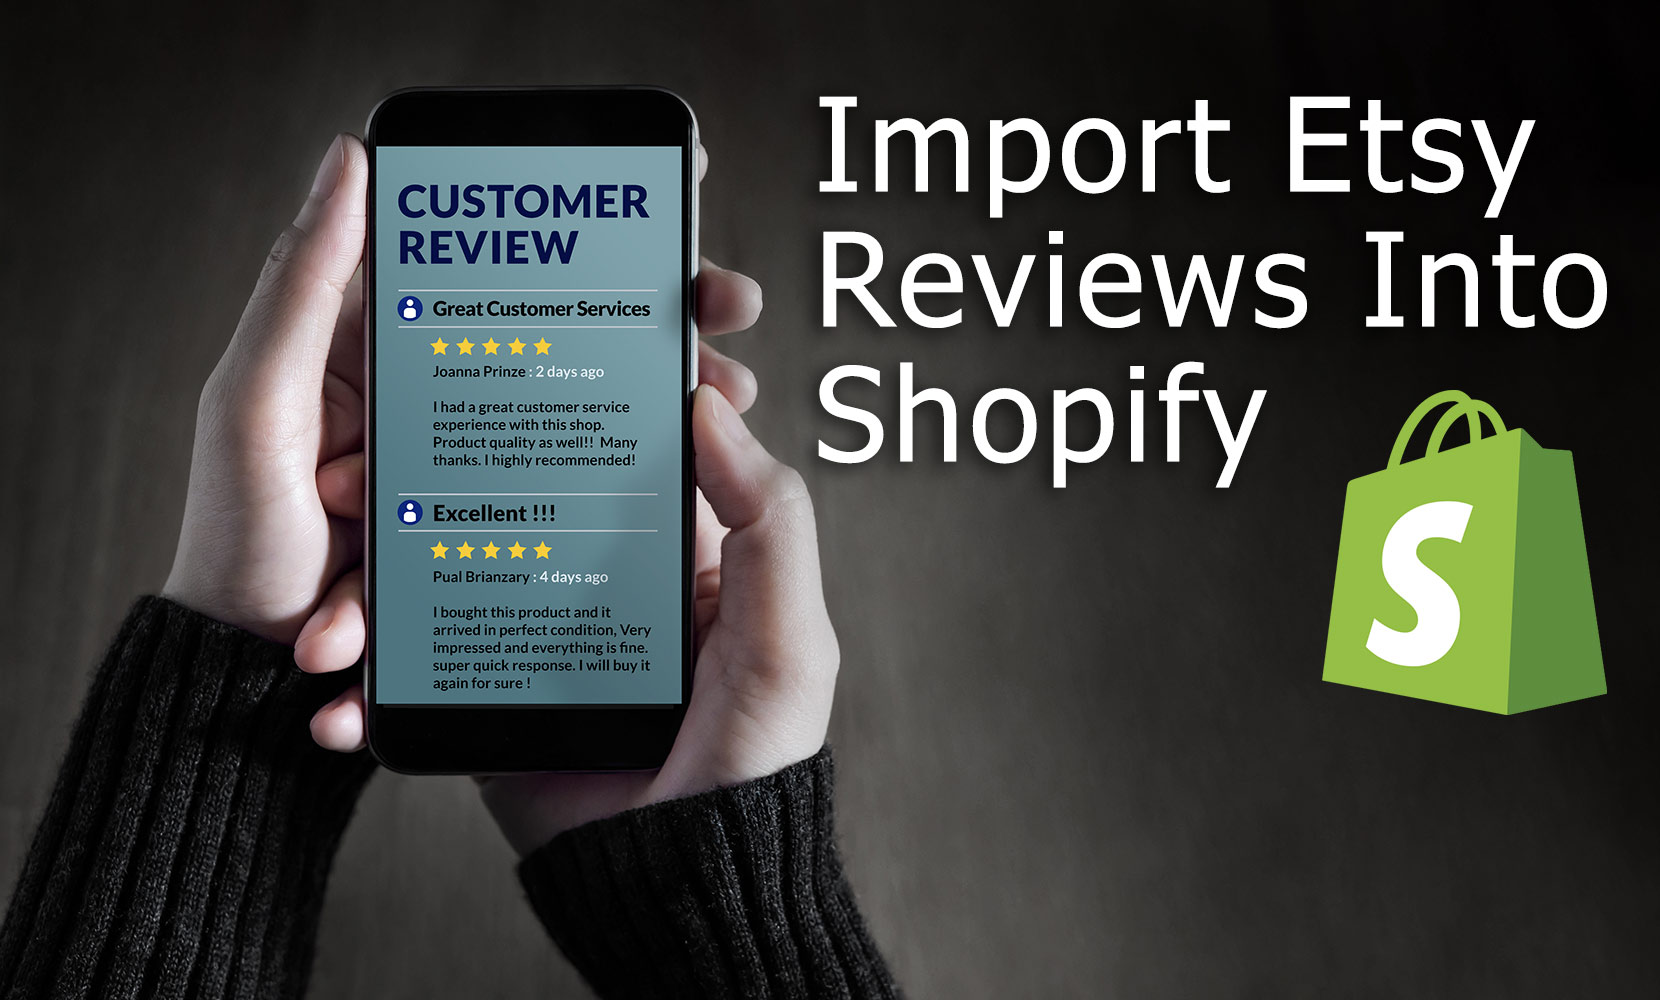 How to import Etsy reviews into Shopify